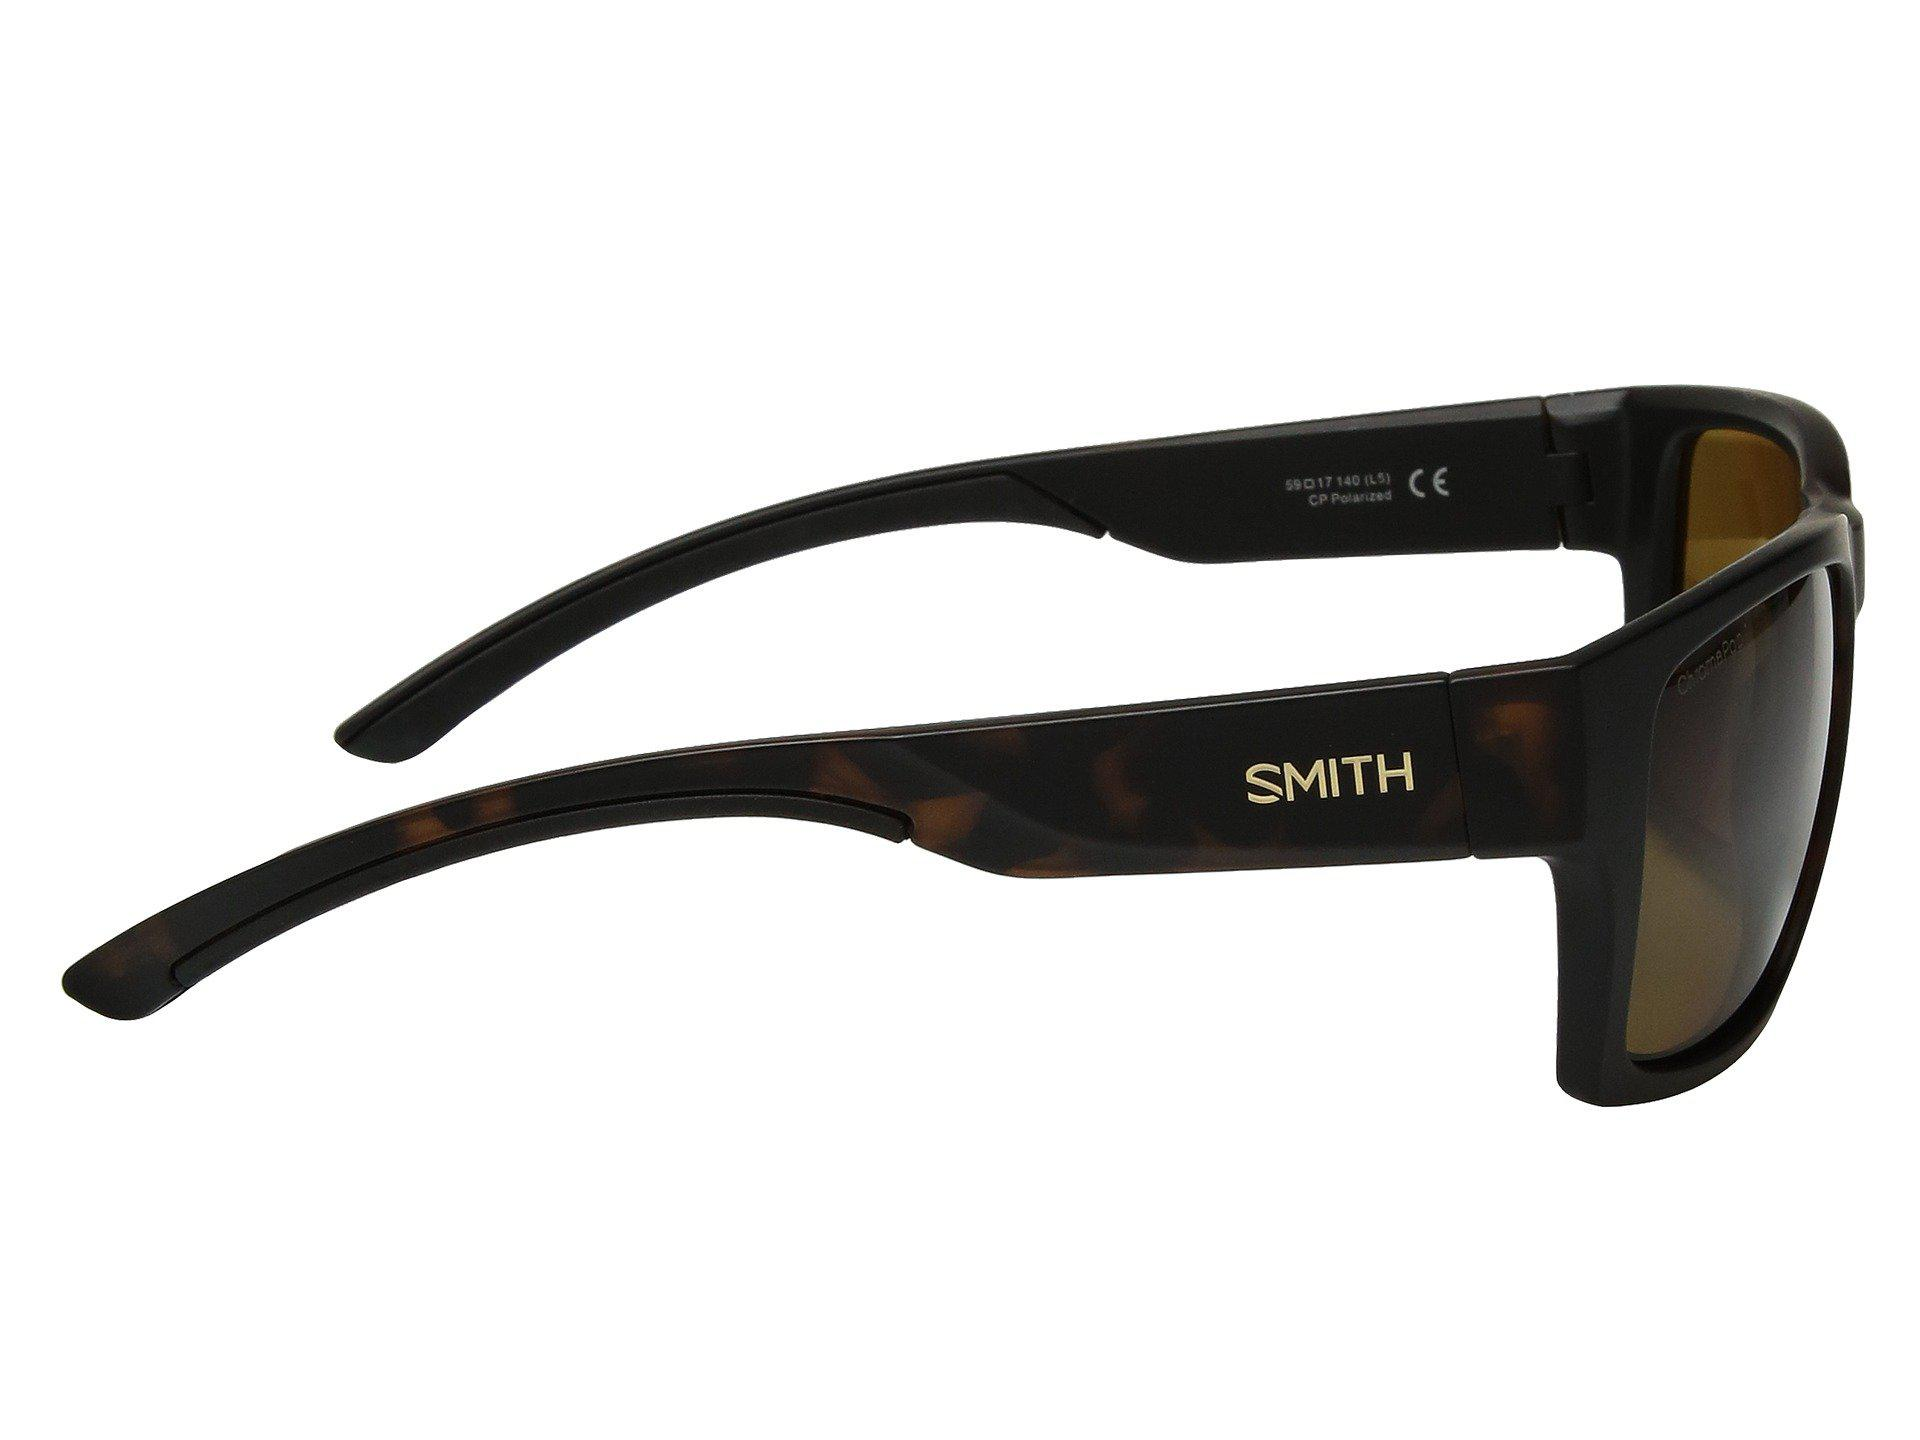 6743aec72e7 Smith Outlier Polarized Sunglasses - Restaurant and Palinka Bar